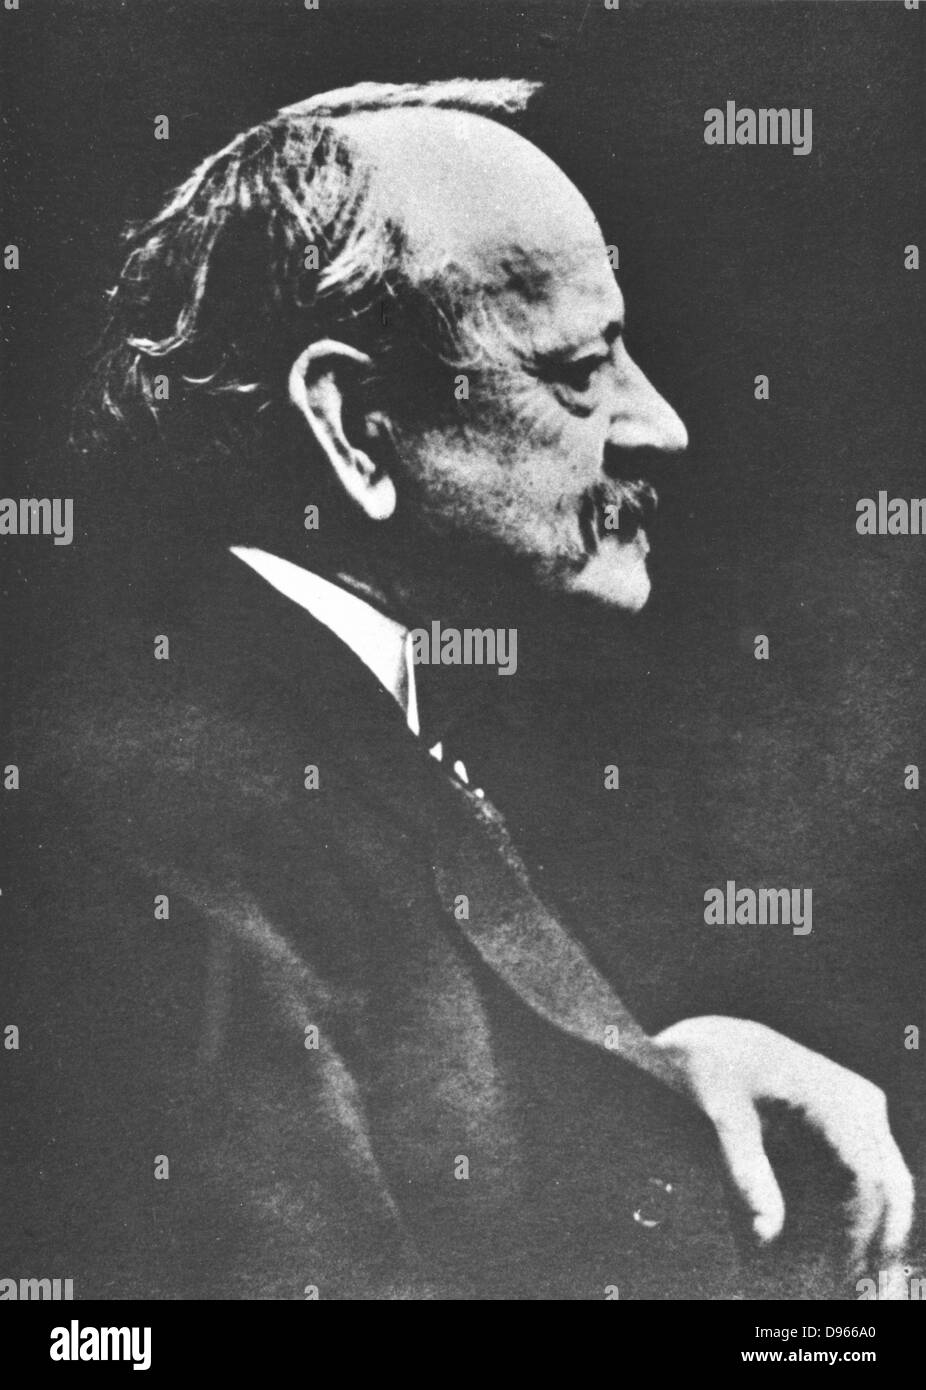 JJ (Joseph John) Thomson 1856-1940. British physicist: discoverer of Electron and pioneer of nuclear physics. From Stock Photo